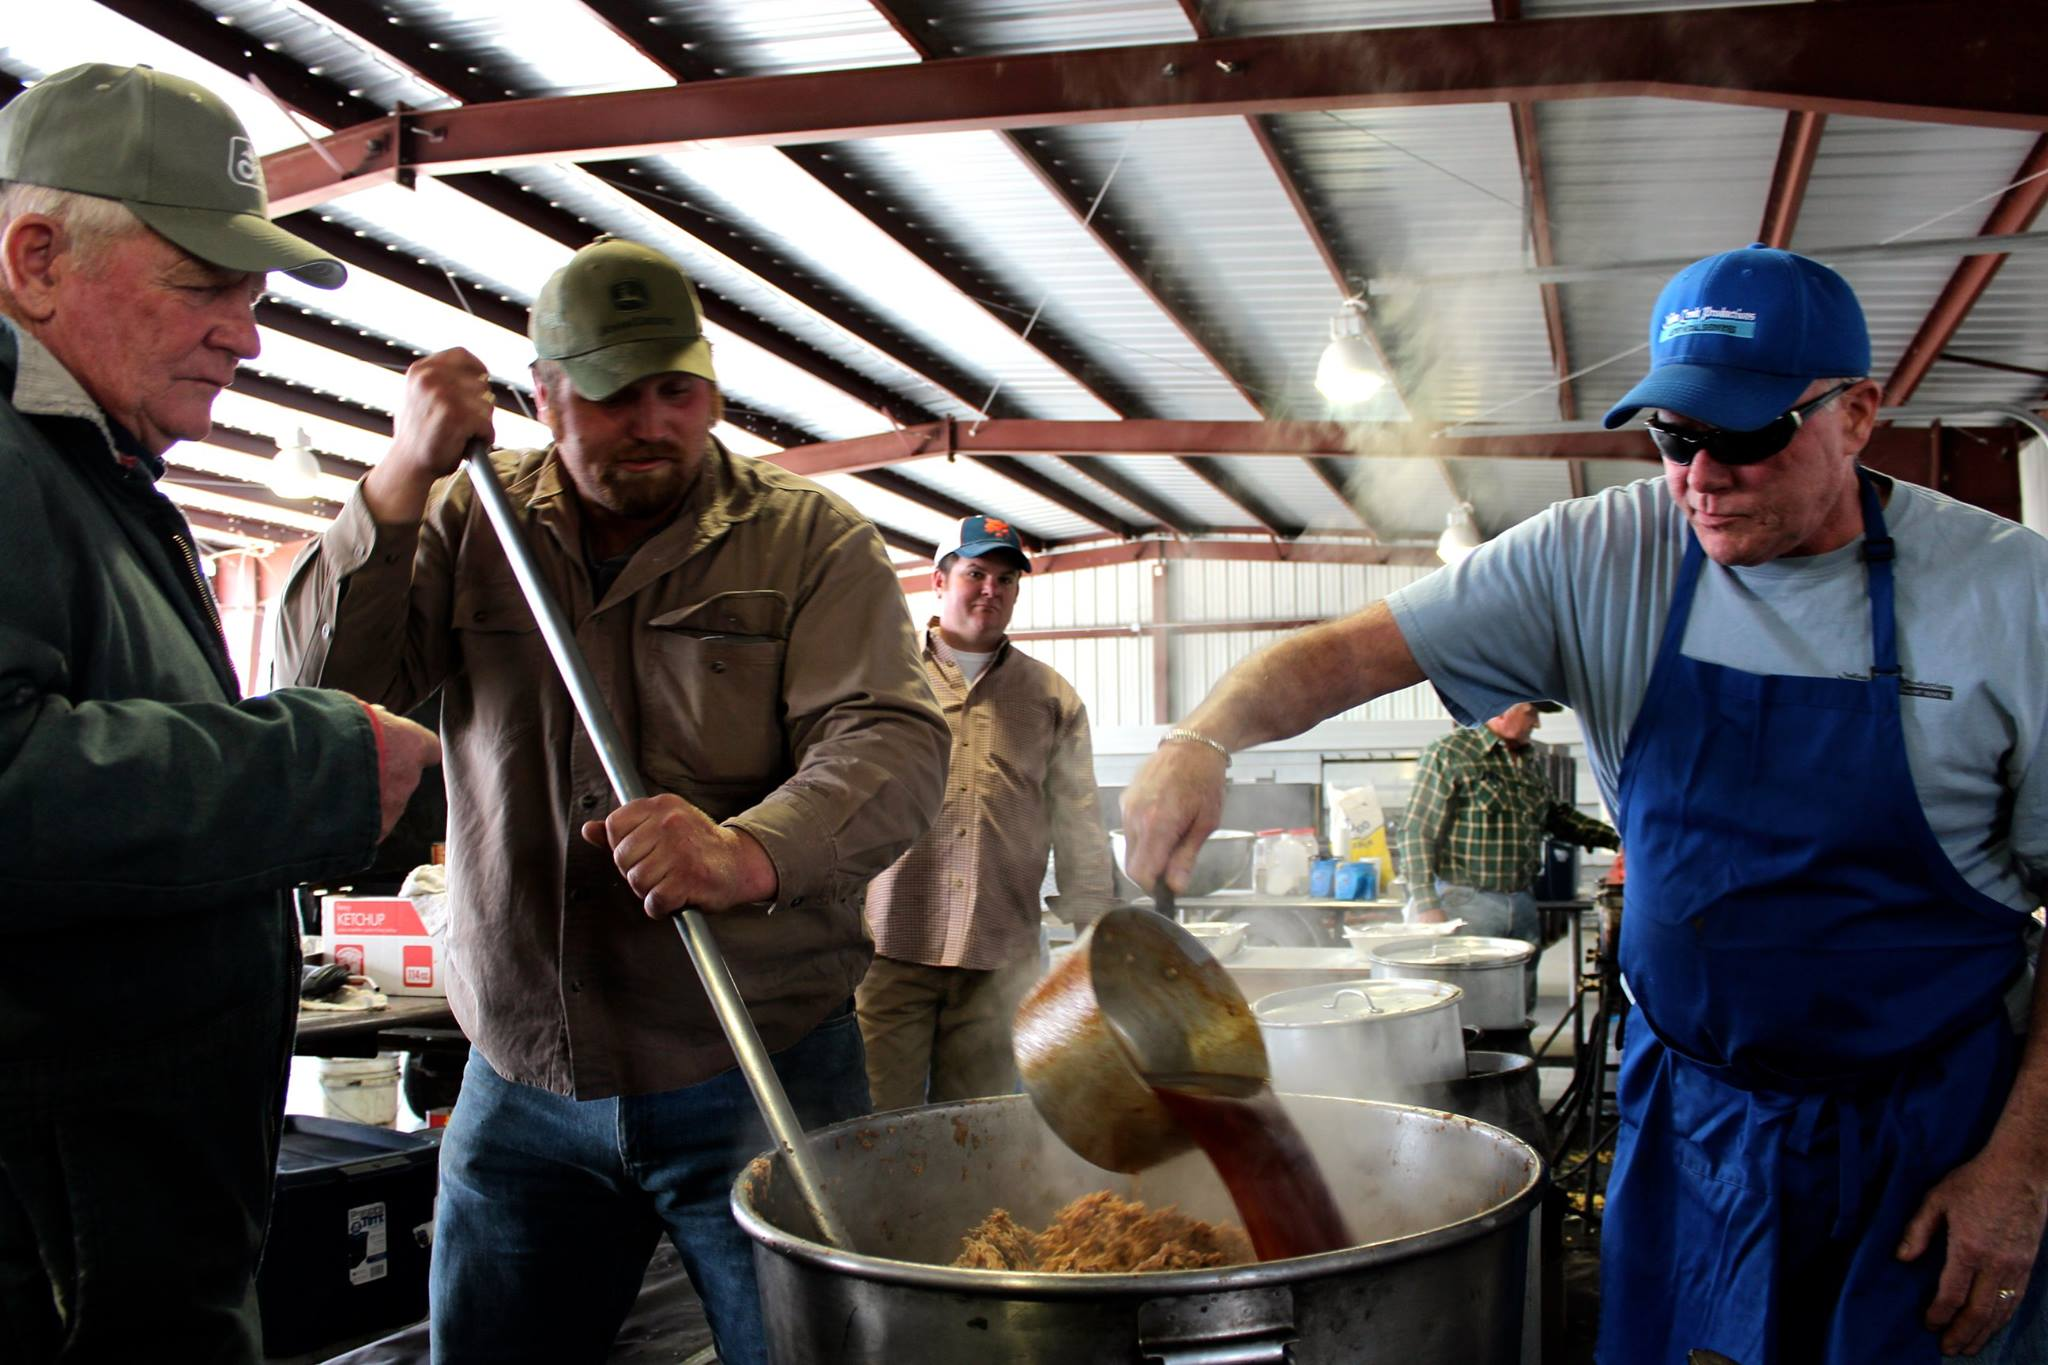 Annual Creeds Ruritan BBQ is planned for March, but this year it's a drive-through